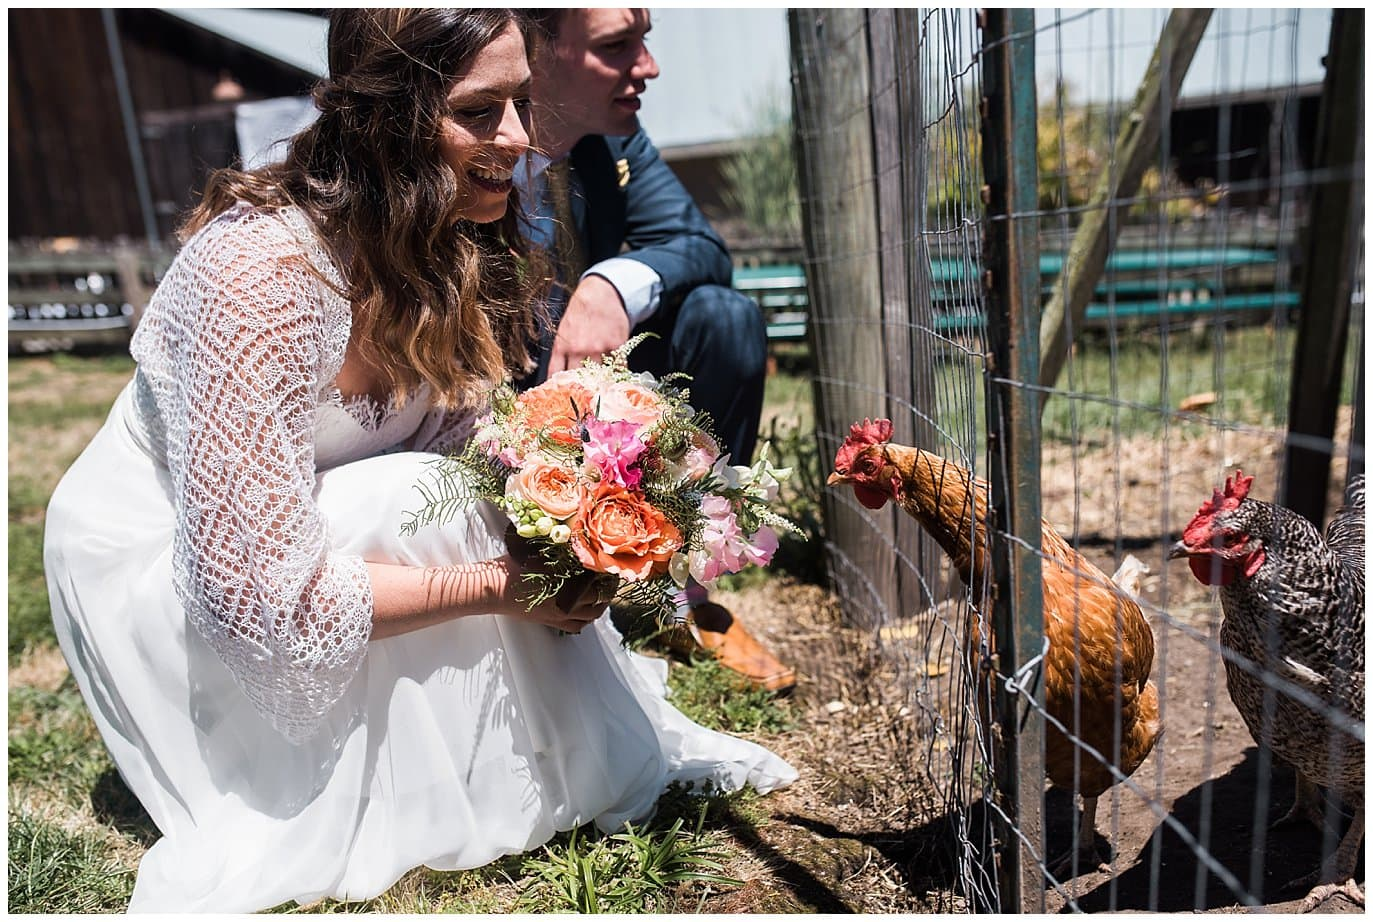 chickens peck bride's bouquet at Mann Family Farm wedding by Bolinas wedding photographer Jennie Crate